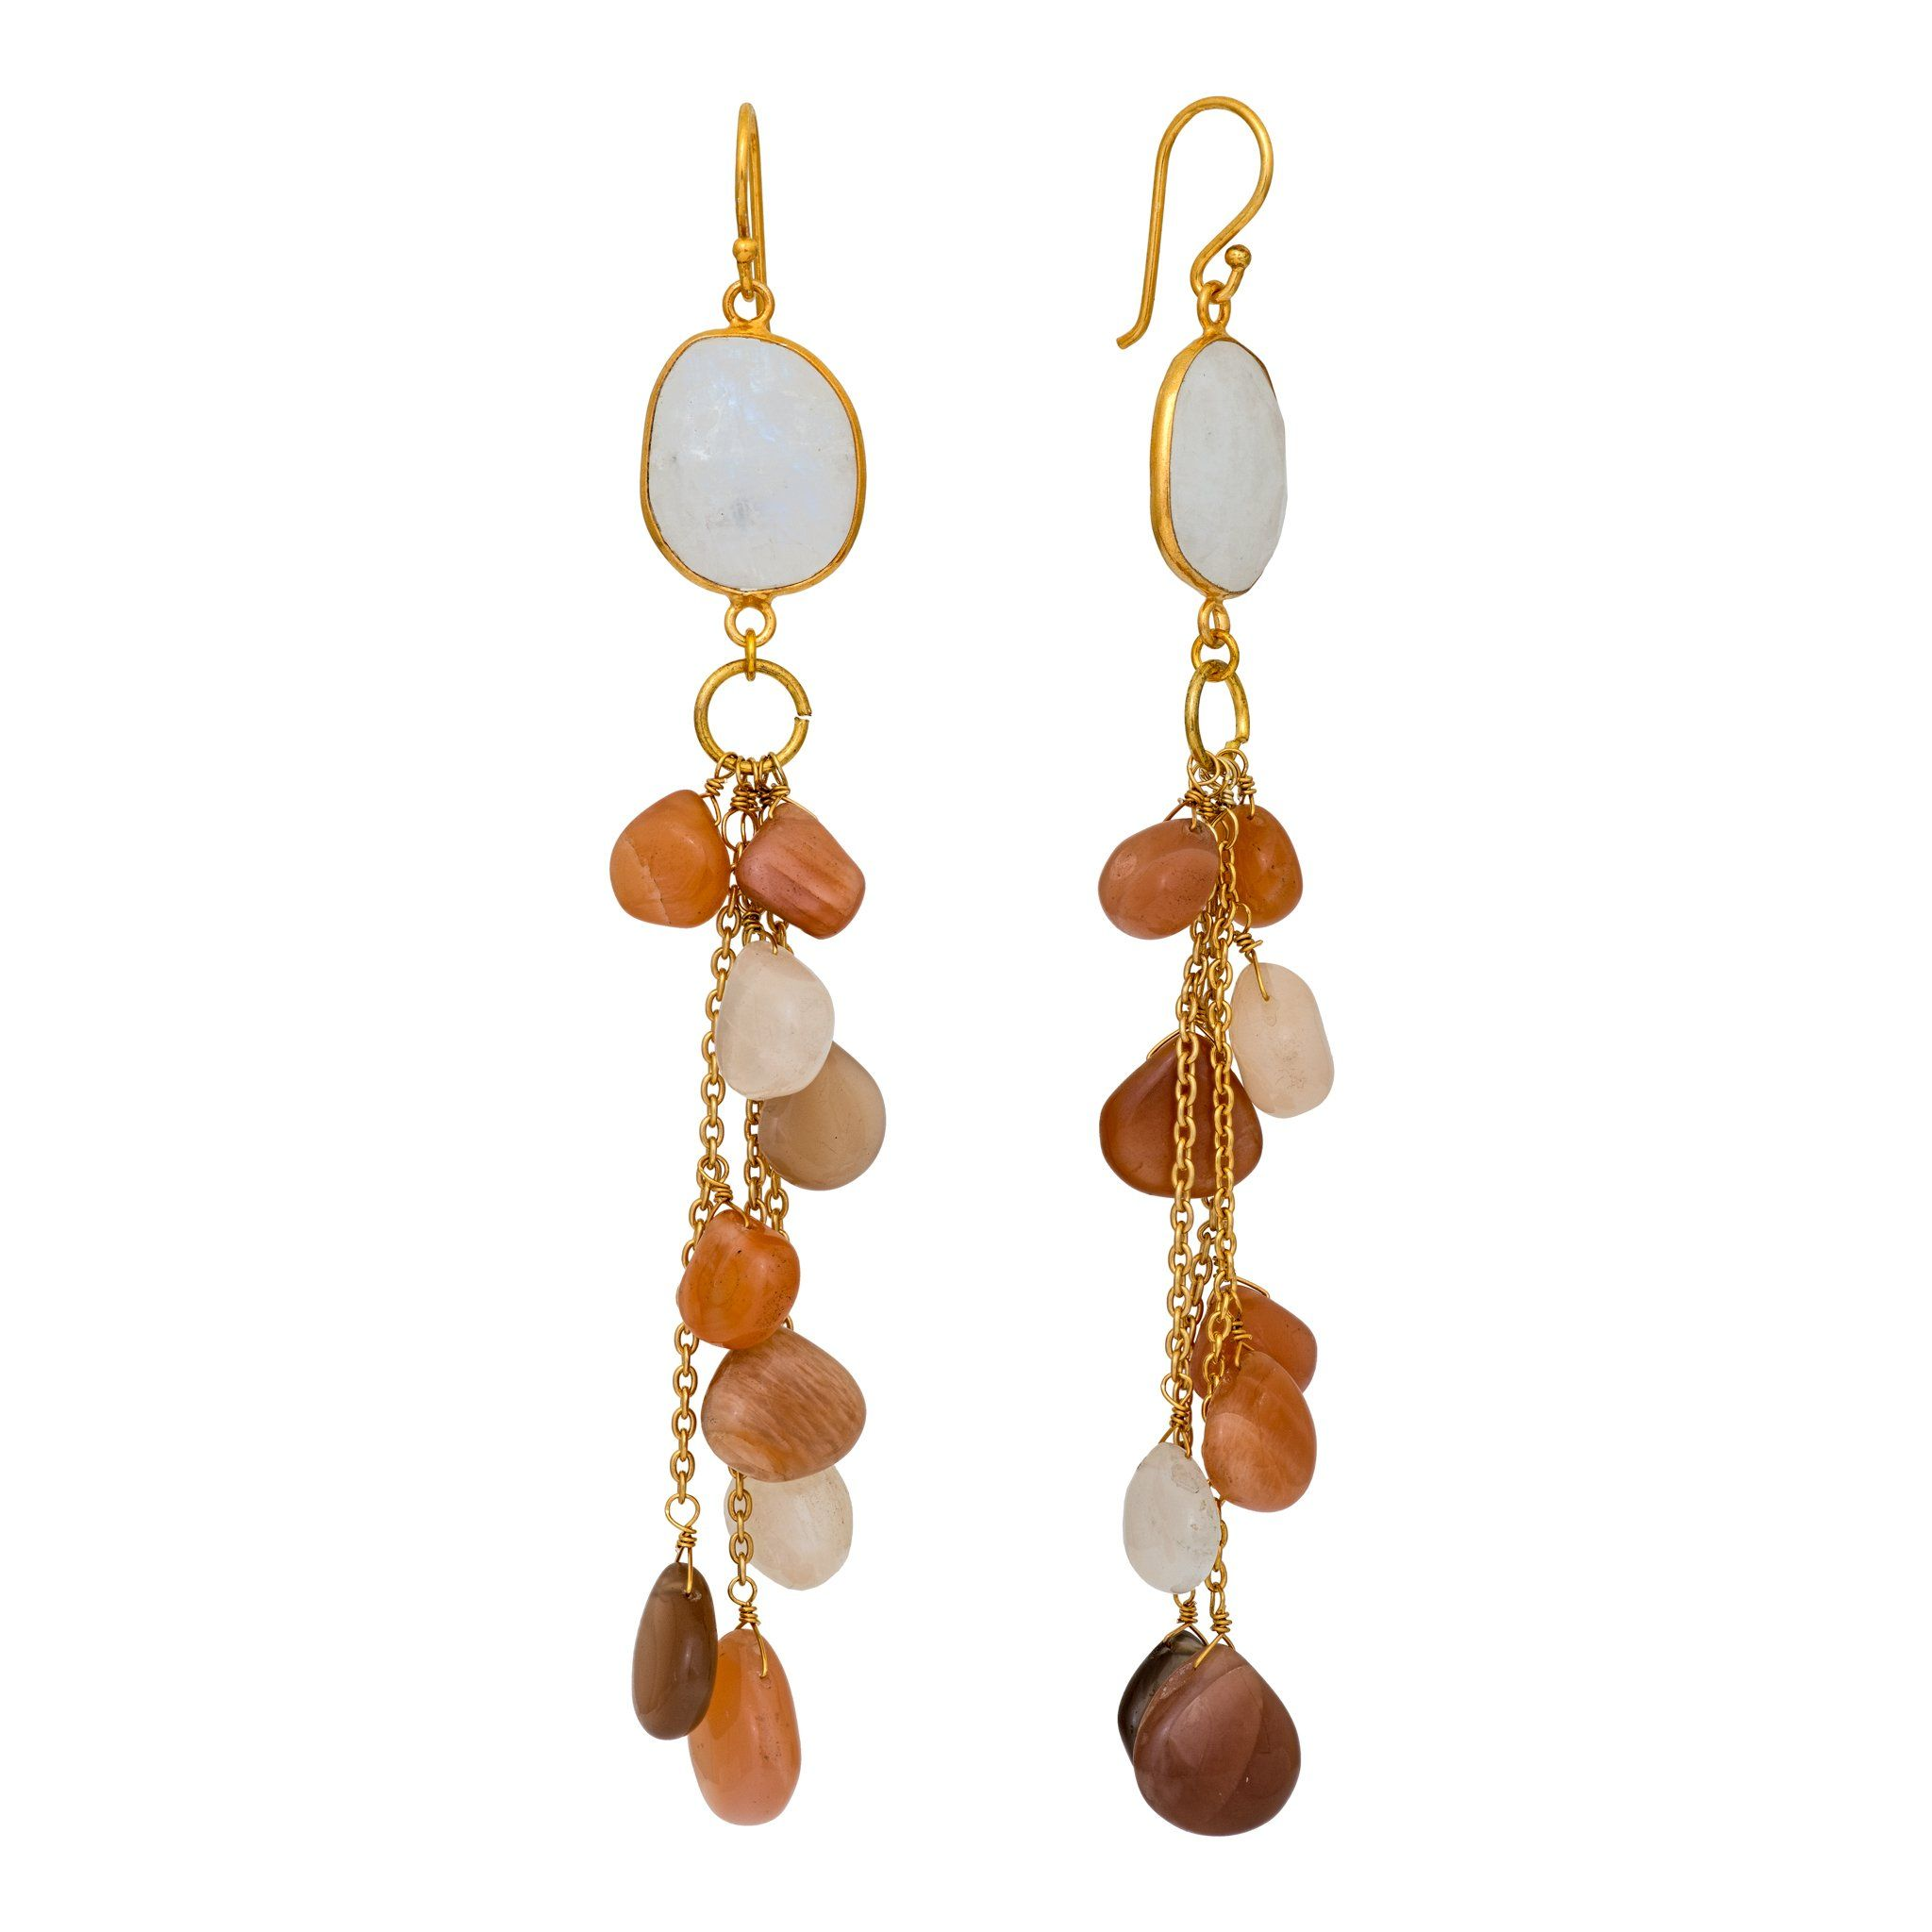 LUZ mix of peach moonstone cluster long earrings